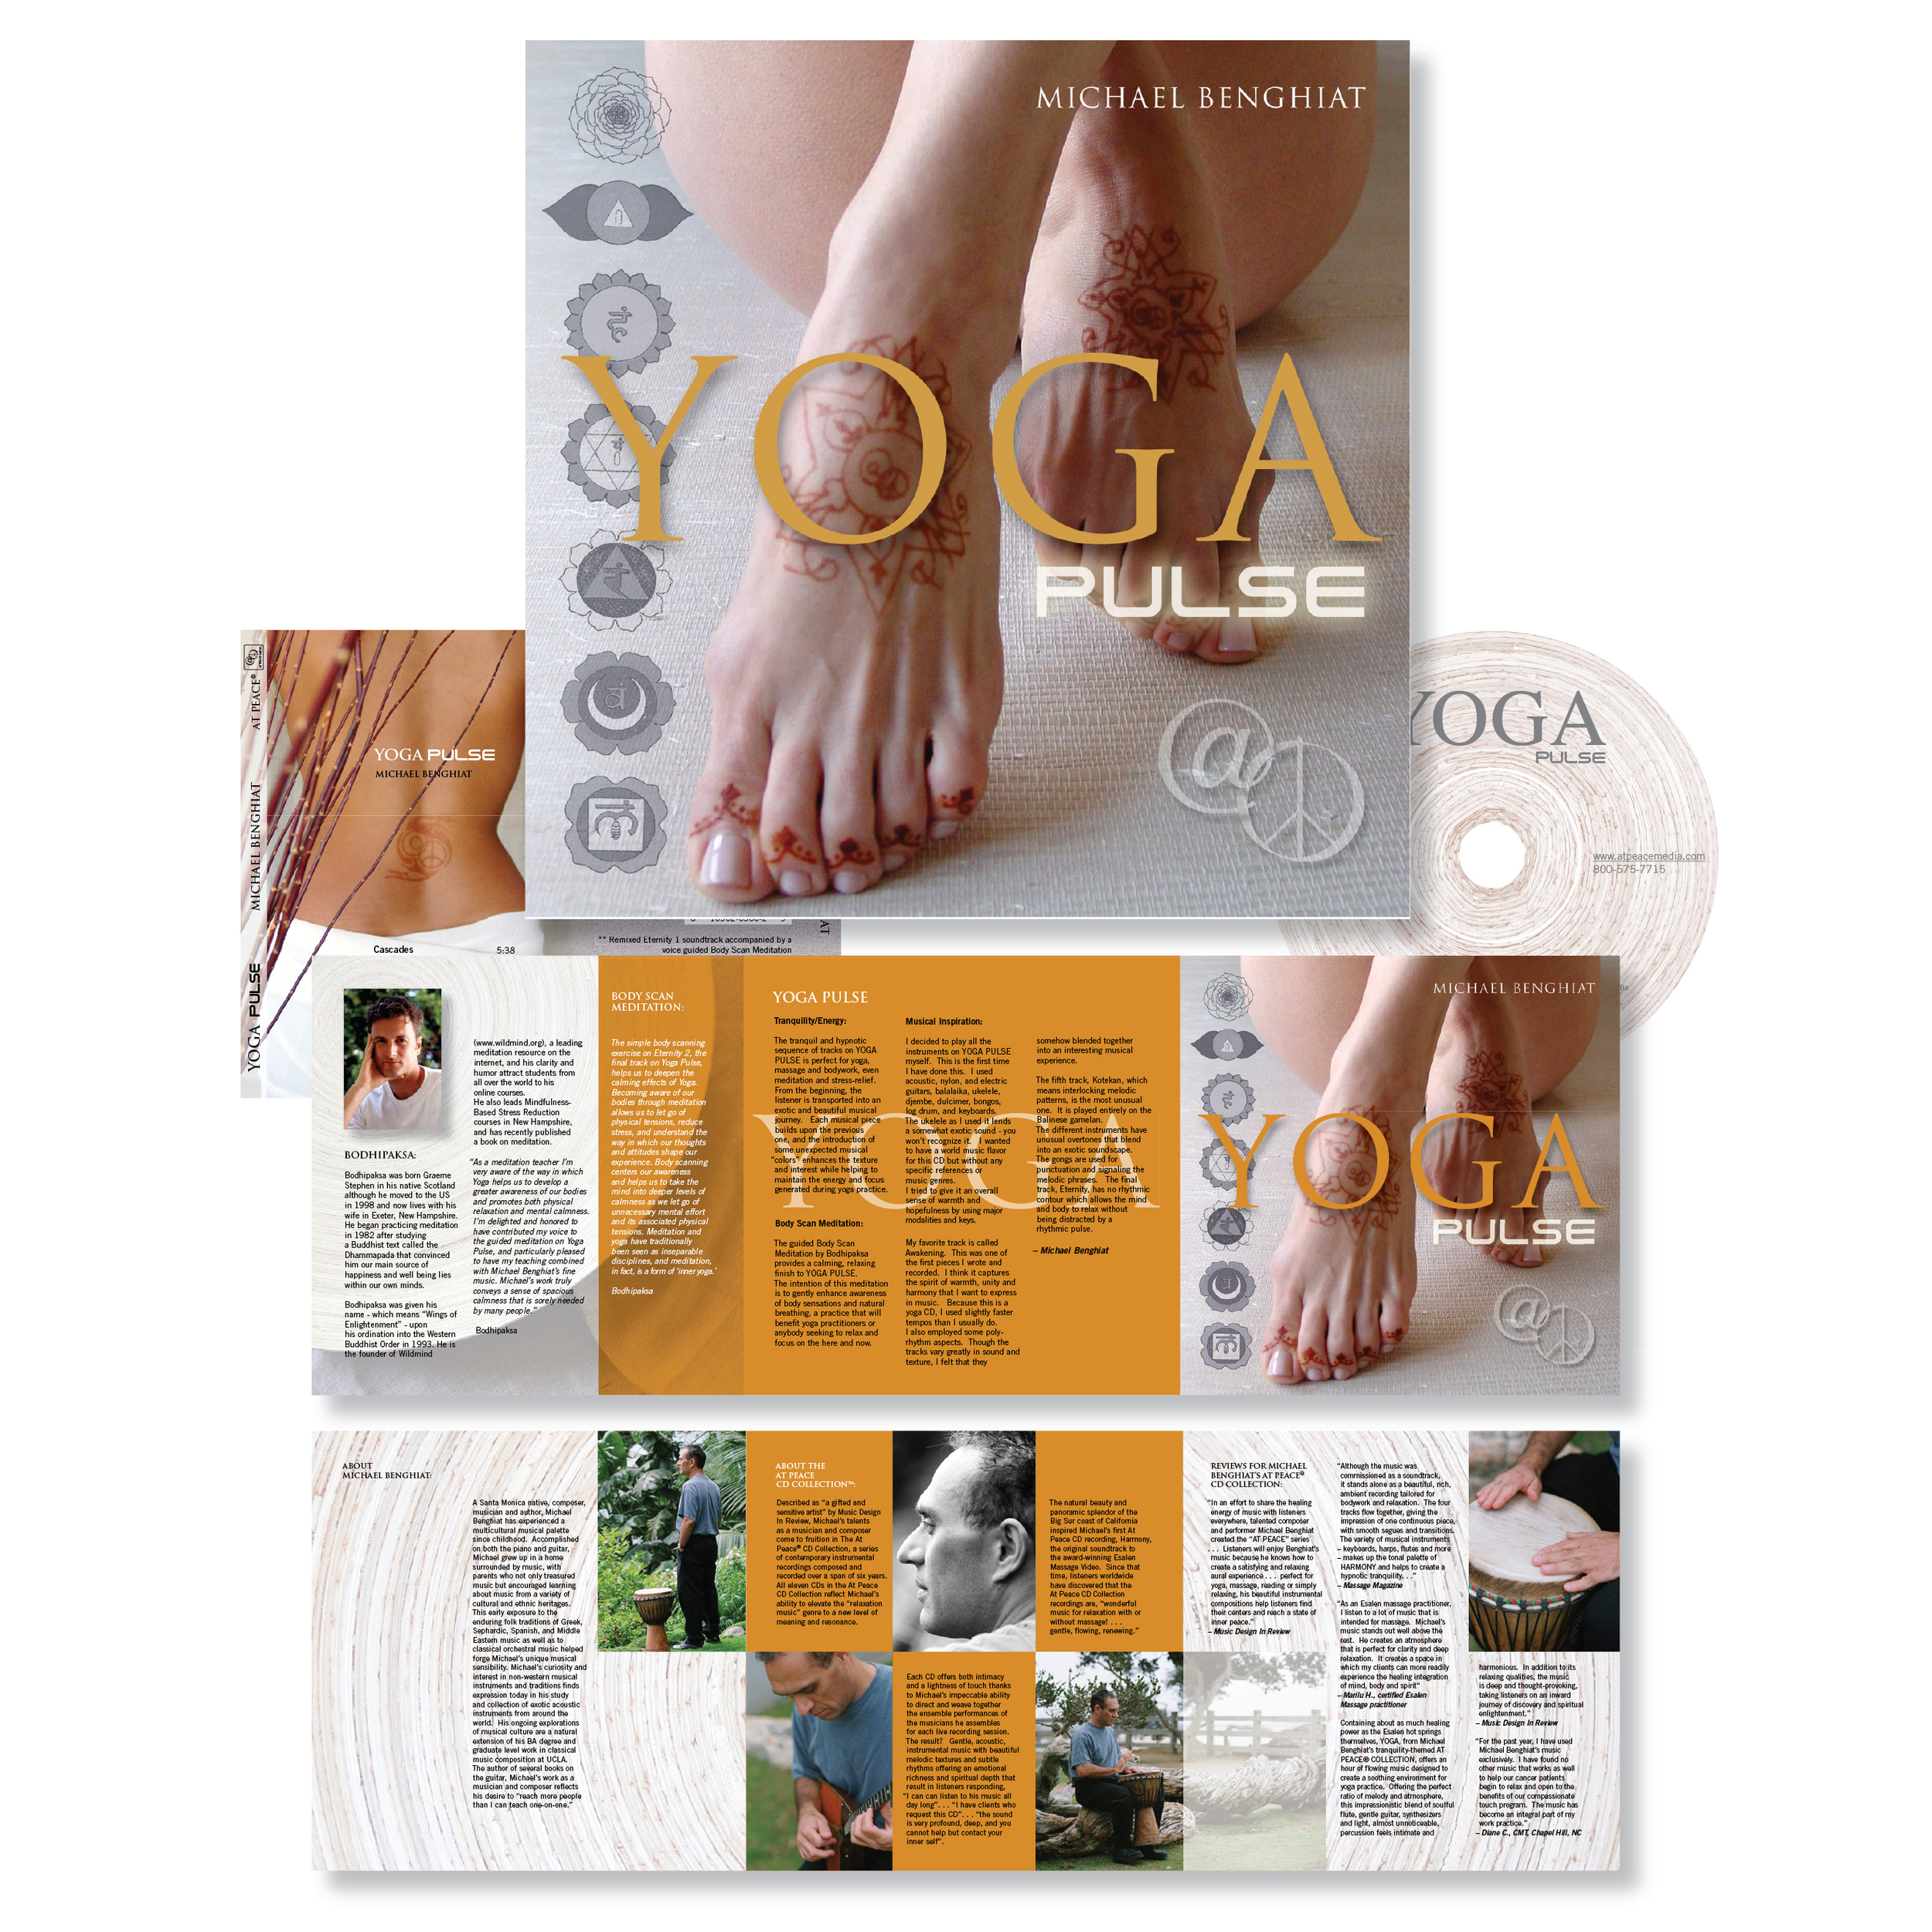 Yoga Pulse CD Pkg.jpg